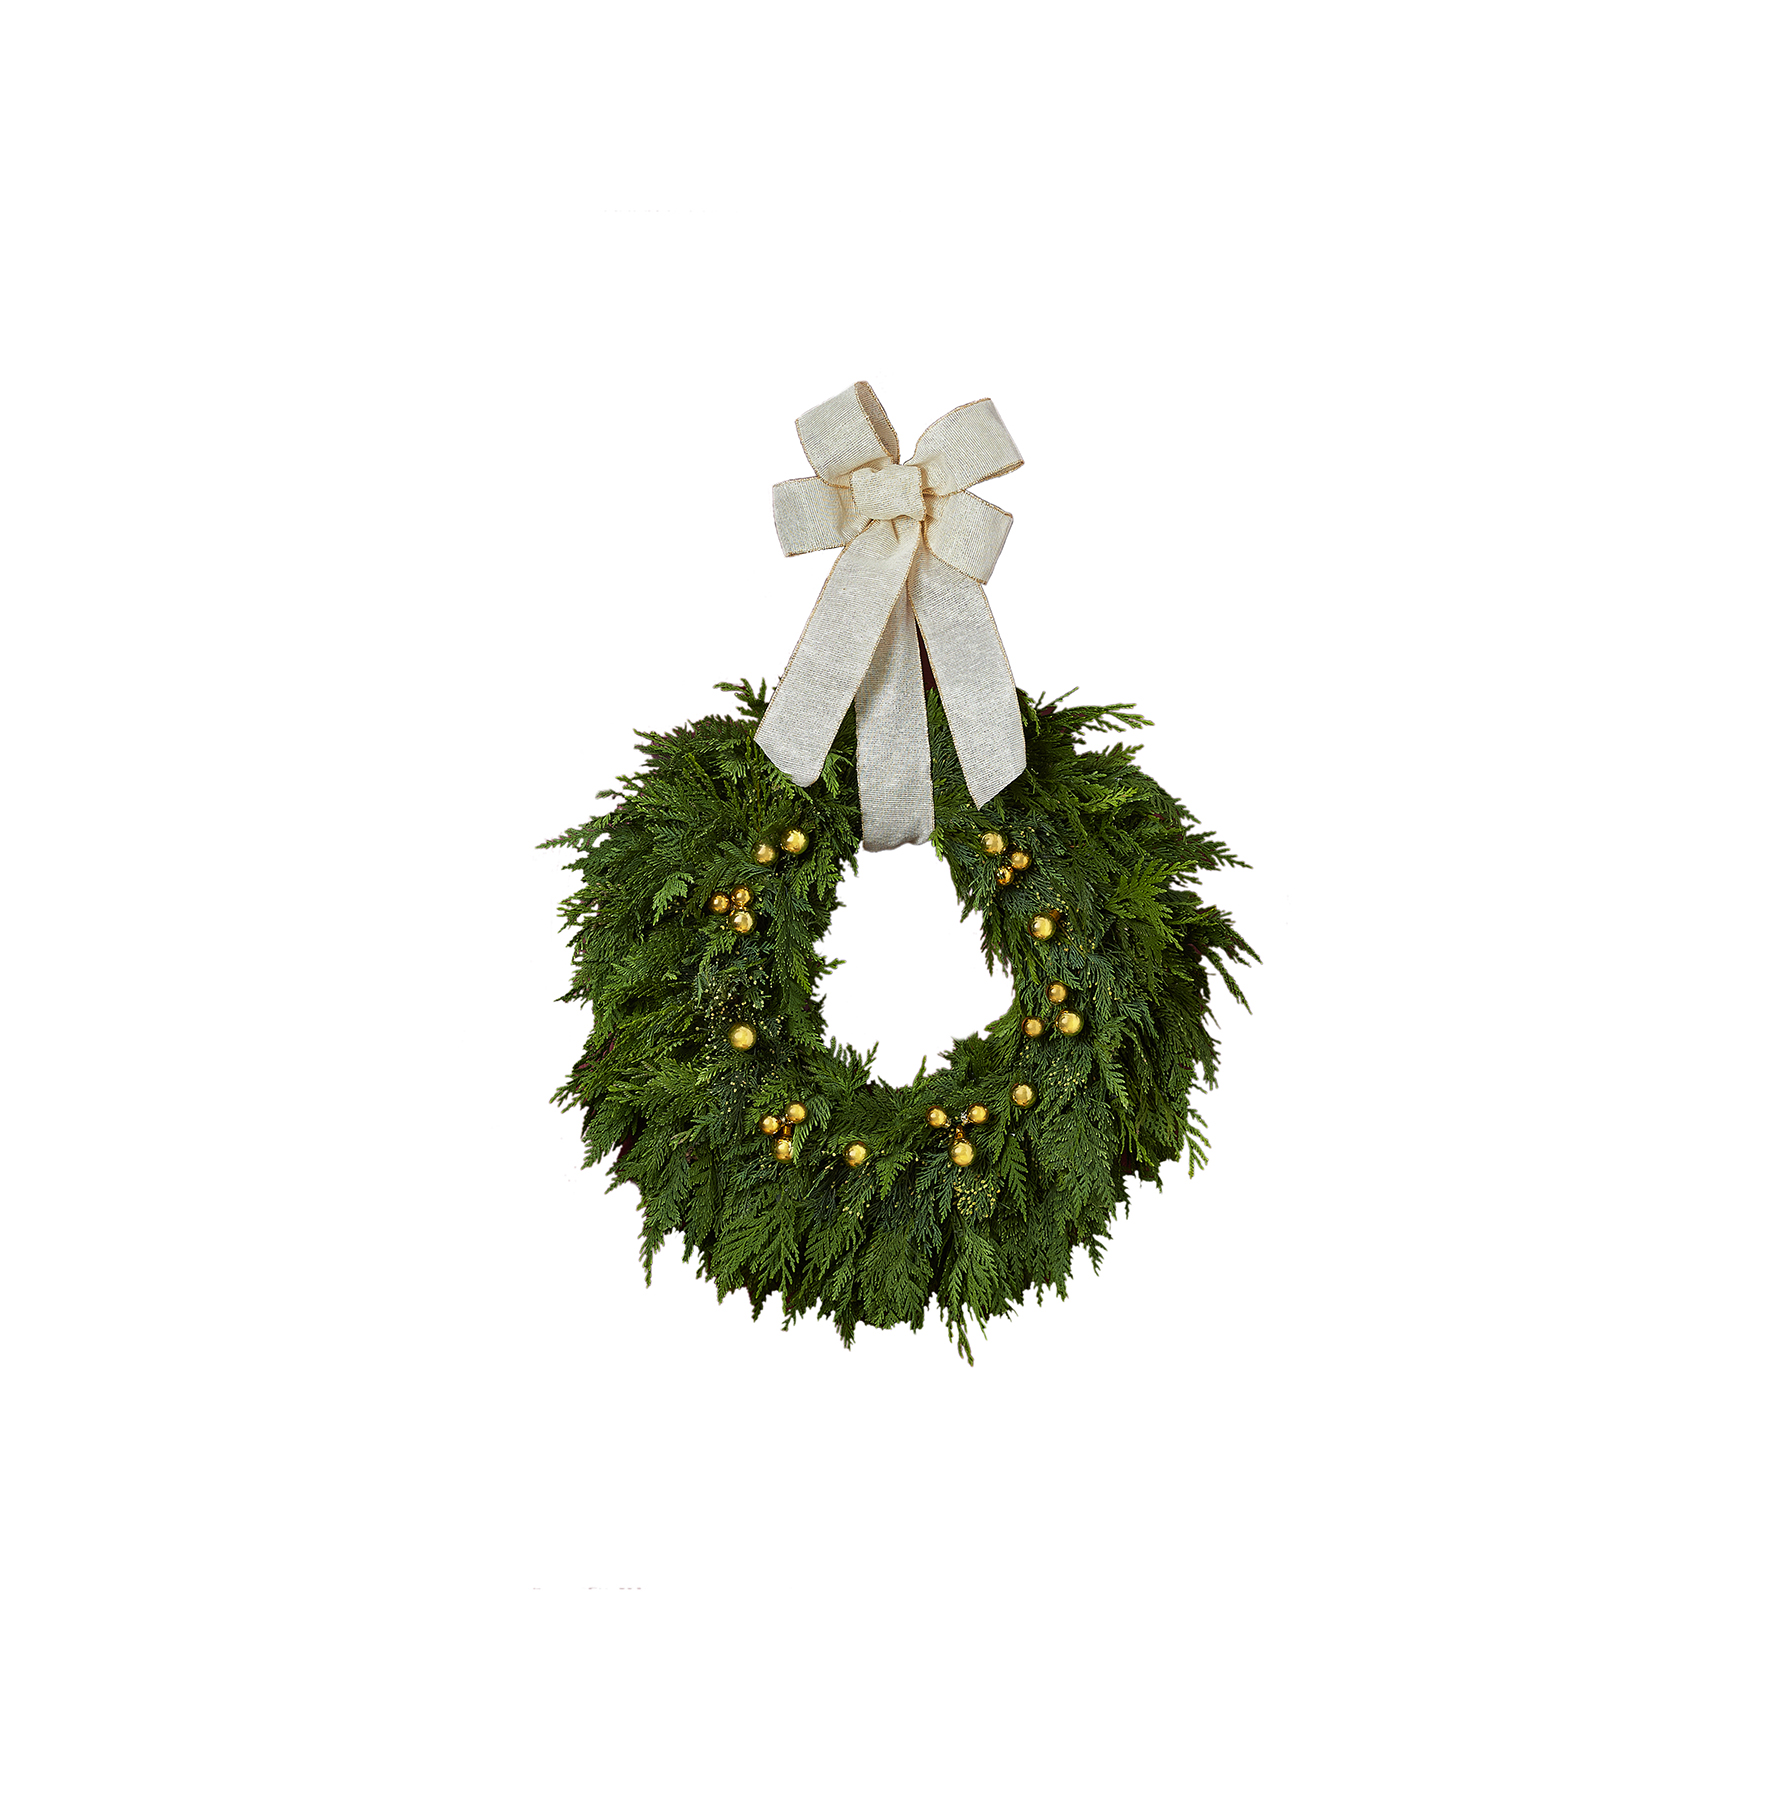 Golden Lights Wreath by Real Simple